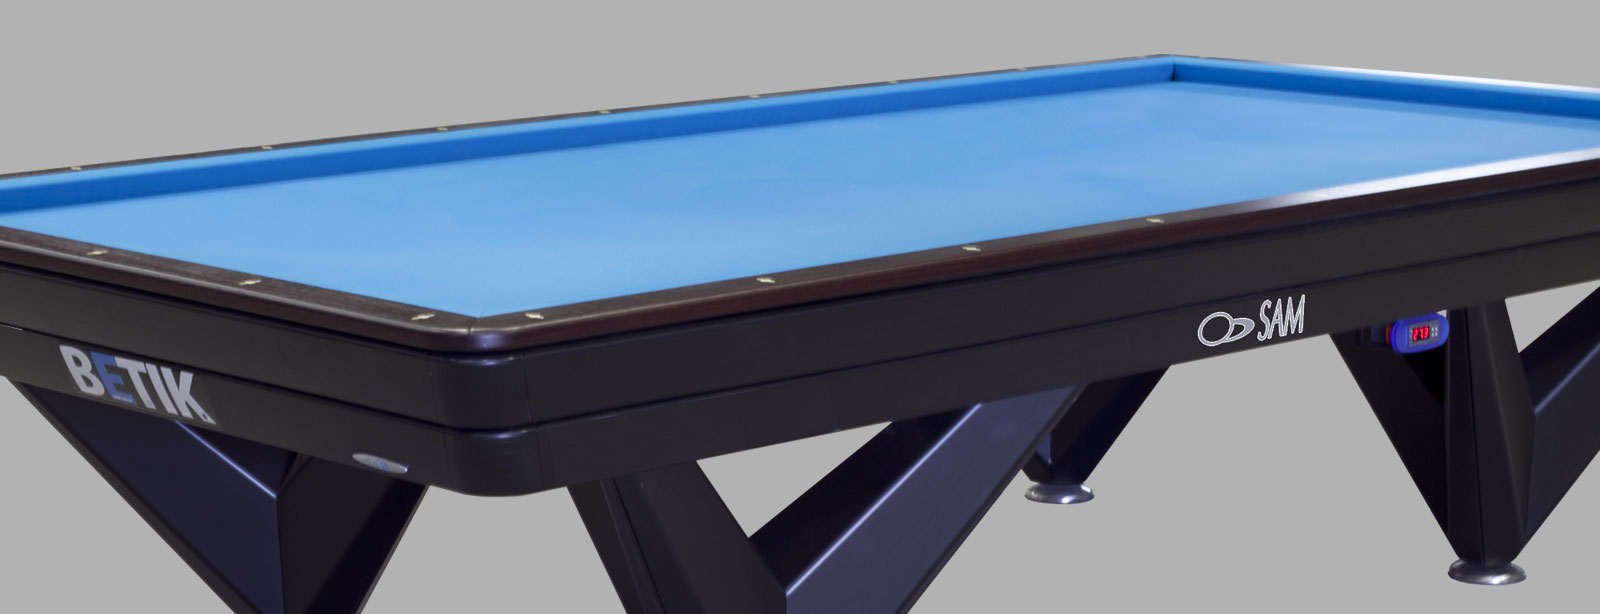 Sam Fabrication Et Vente De Tables De Billard Babyfoots